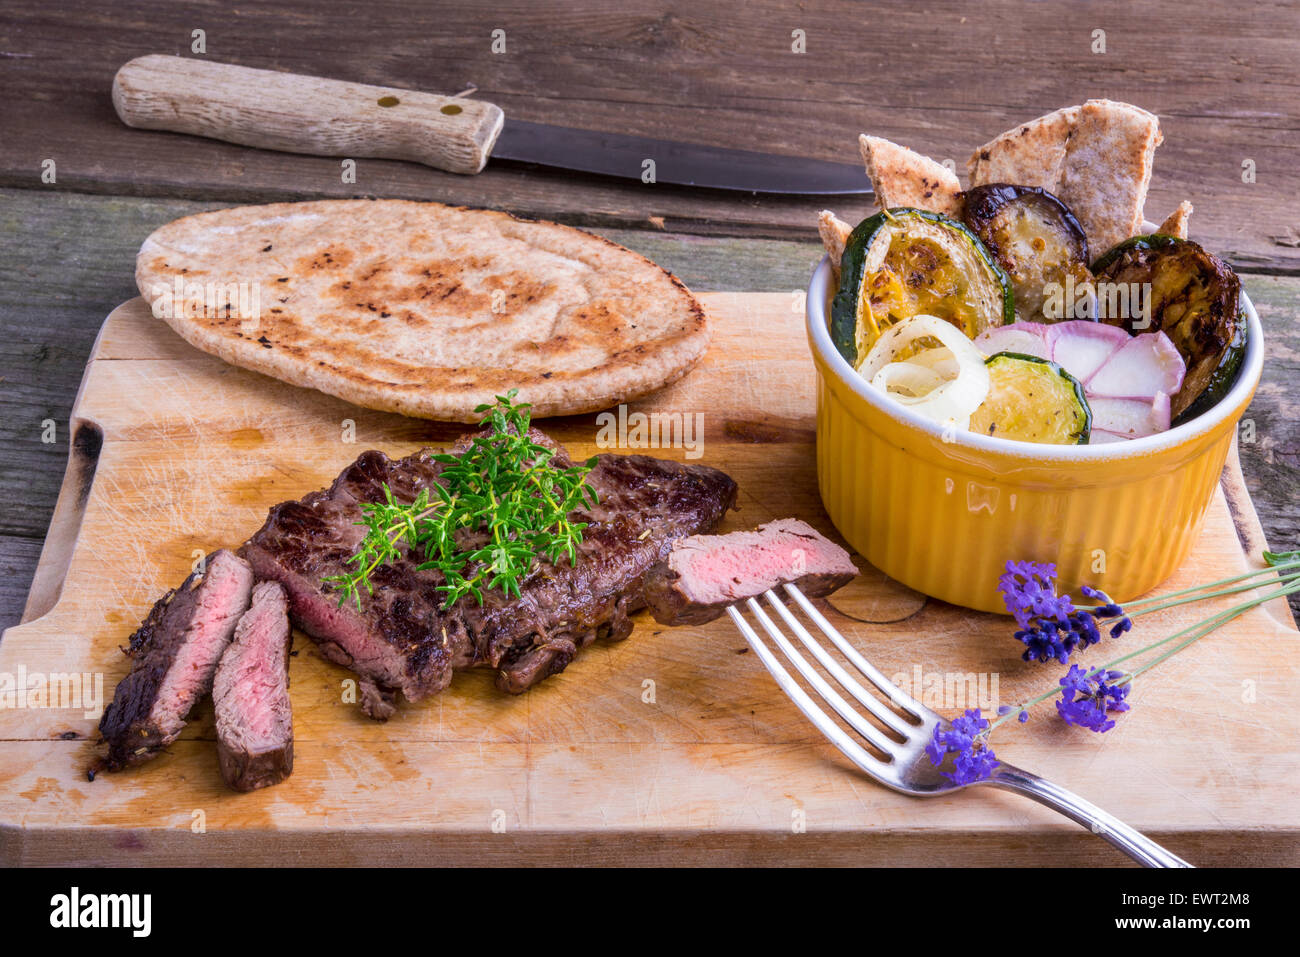 Provencal style horse meat entrecote steak with ratatouille and flat bread served on a wooden board decorated with - Stock Image